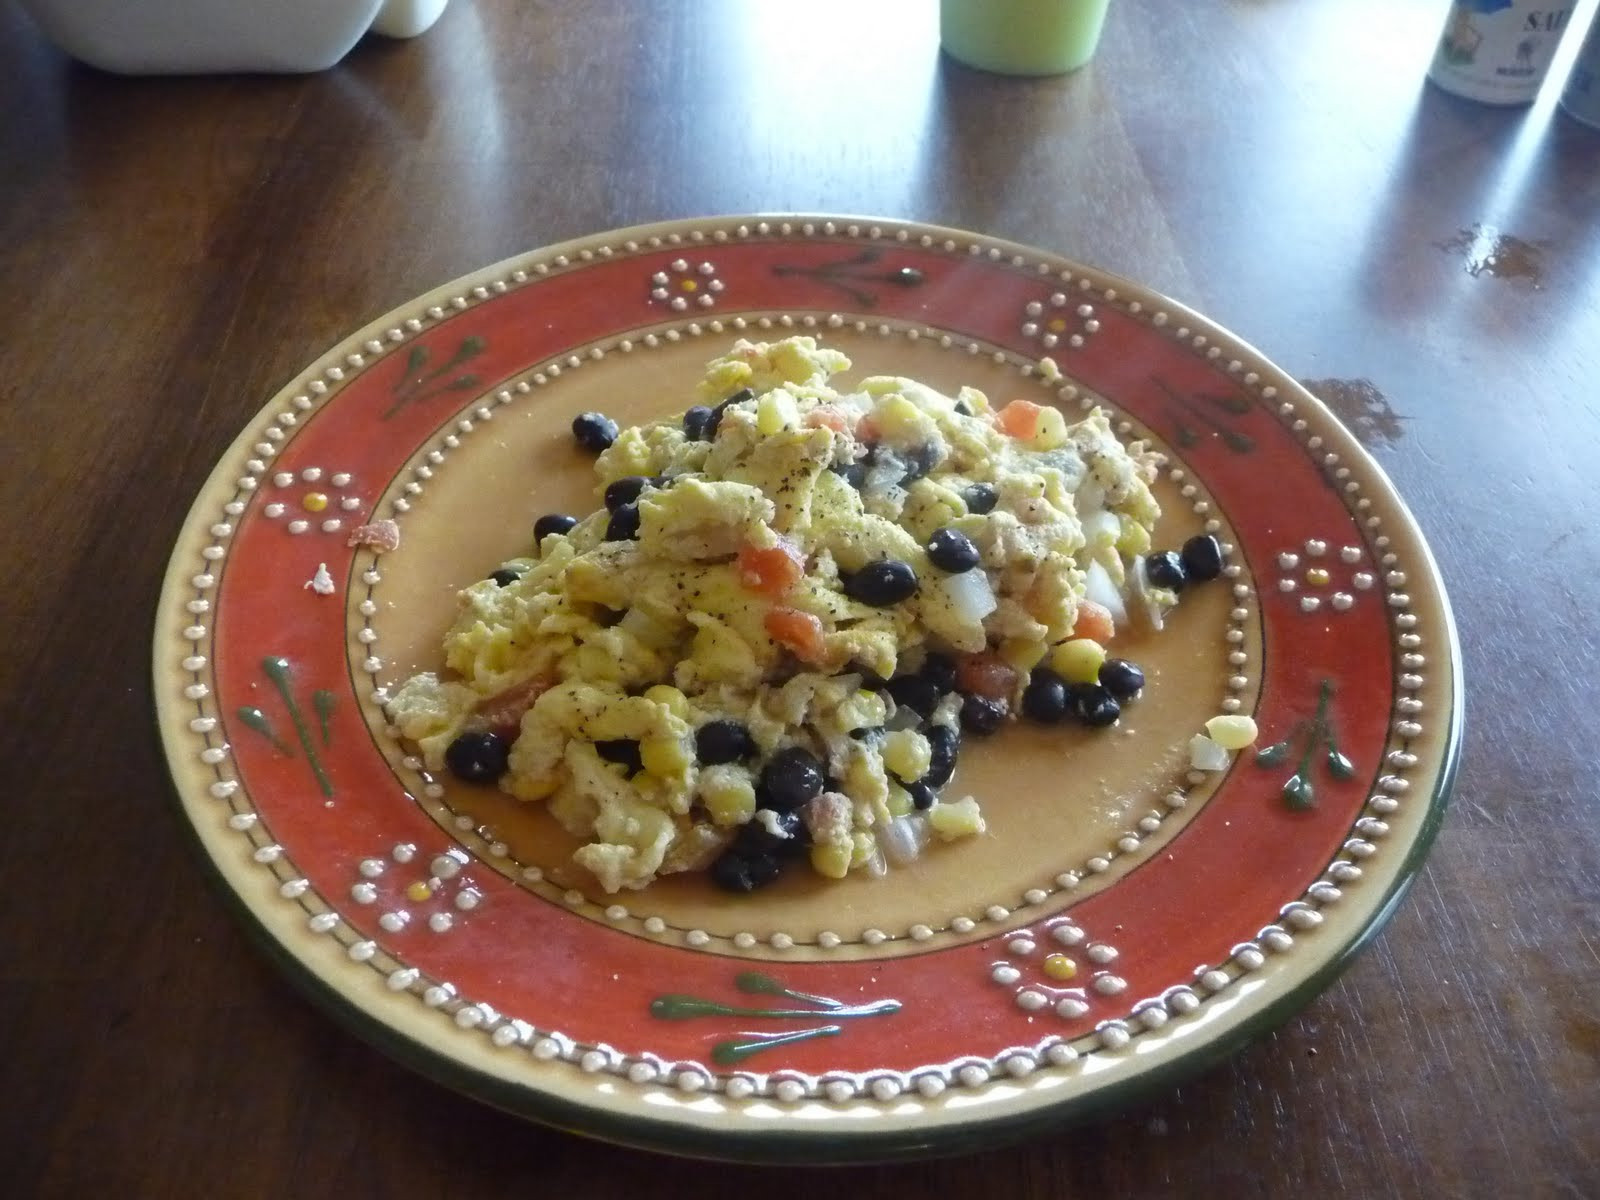 Healthy Breakfast Recipes Without Eggs  Healthy Breakfast Recipes Without Eggs